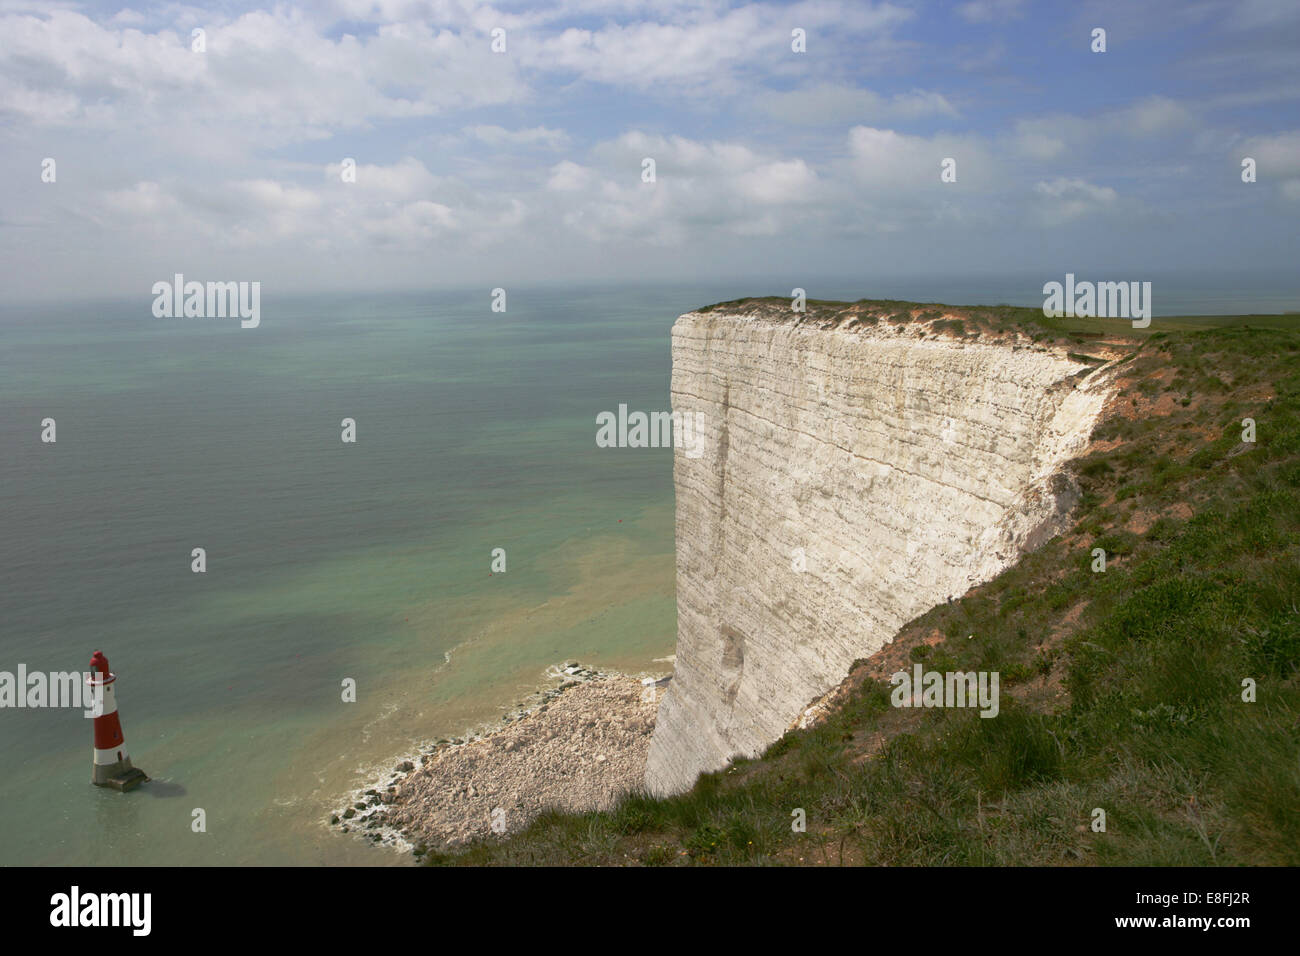 Lighthouse, Beachy Head, Eastbourne, East Sussex, England, UK - Stock Image